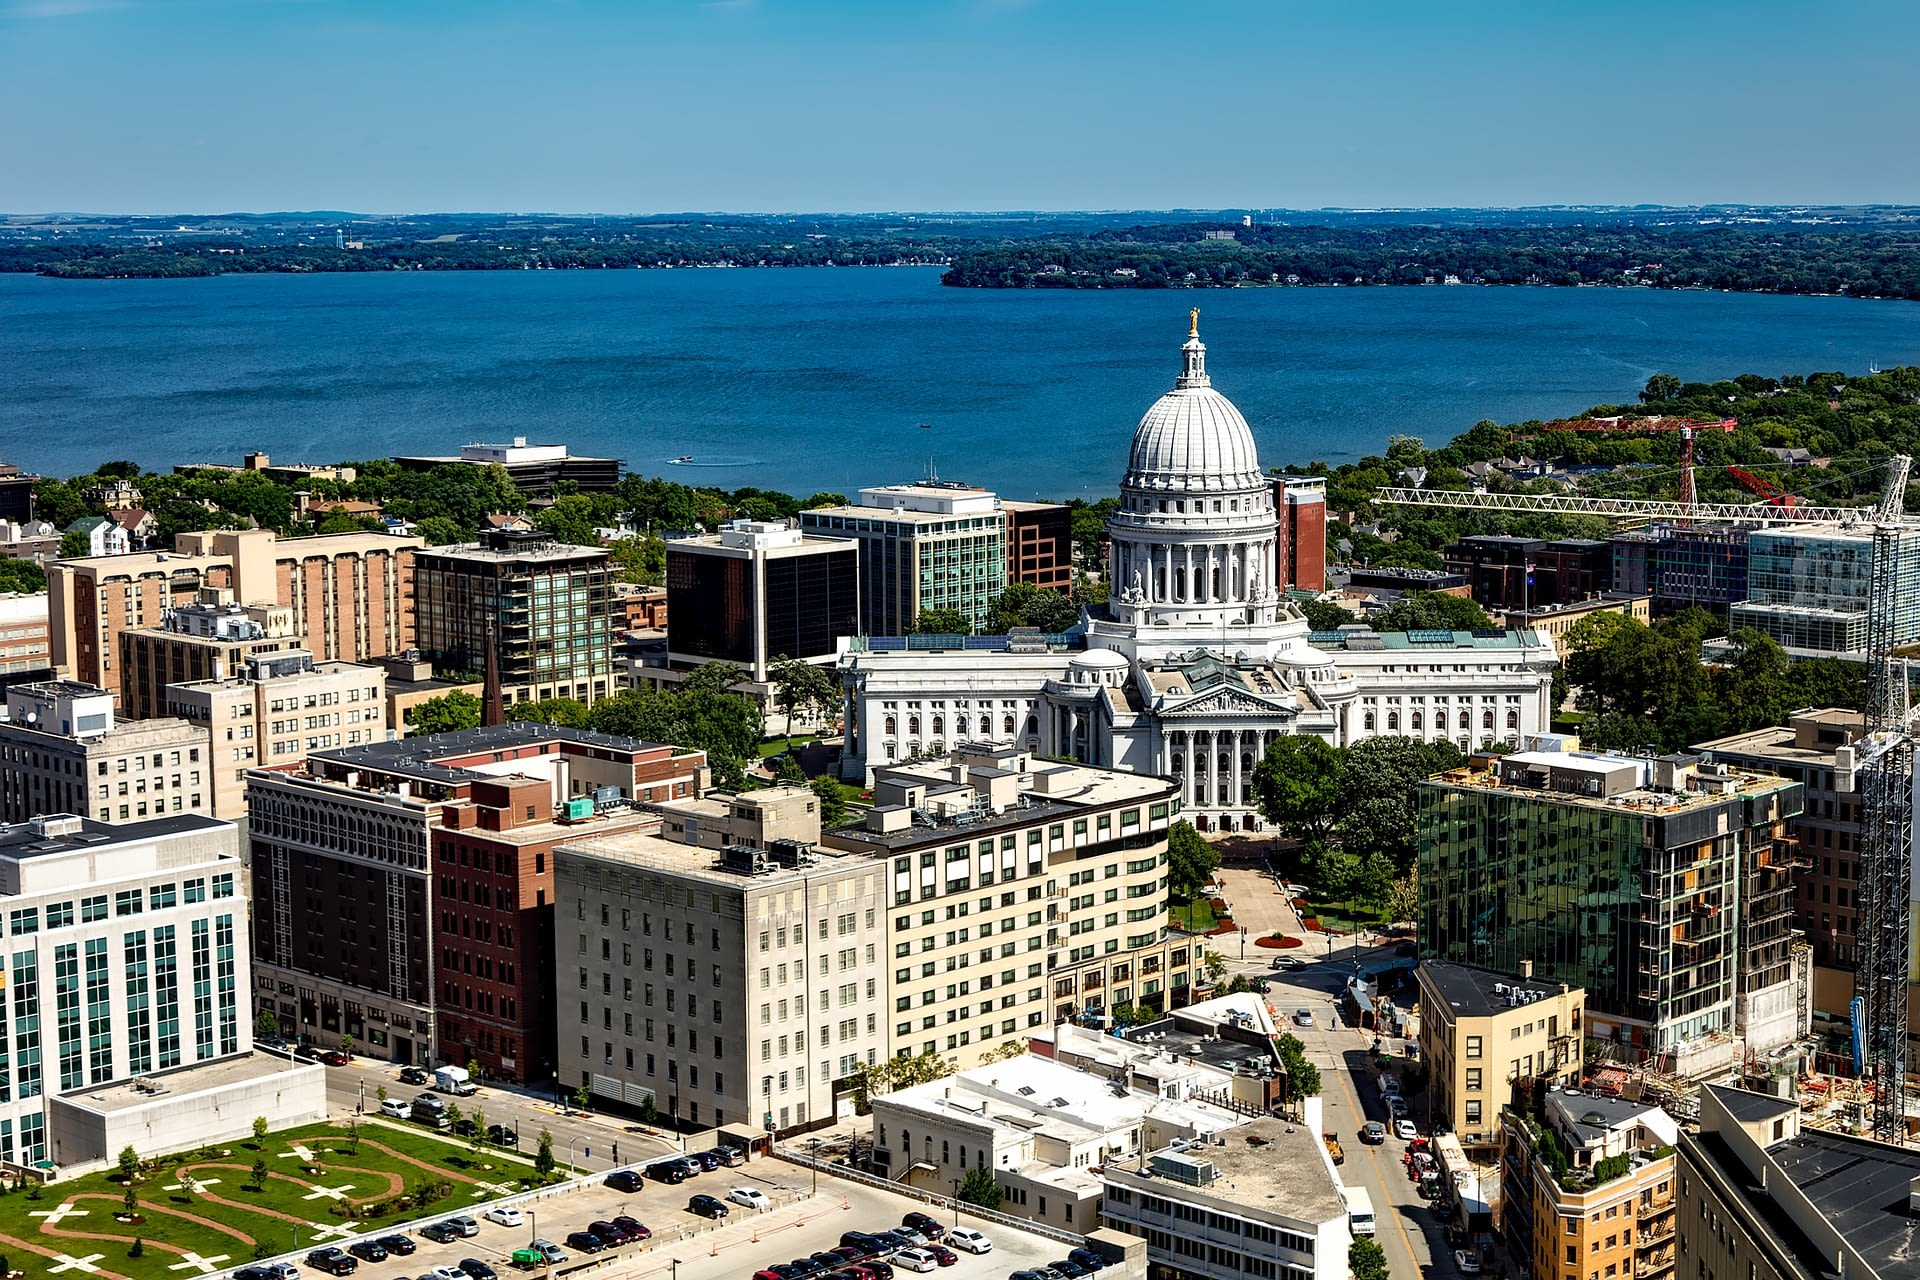 Downtown Madison with the capitol building in the foreground and the lake in background